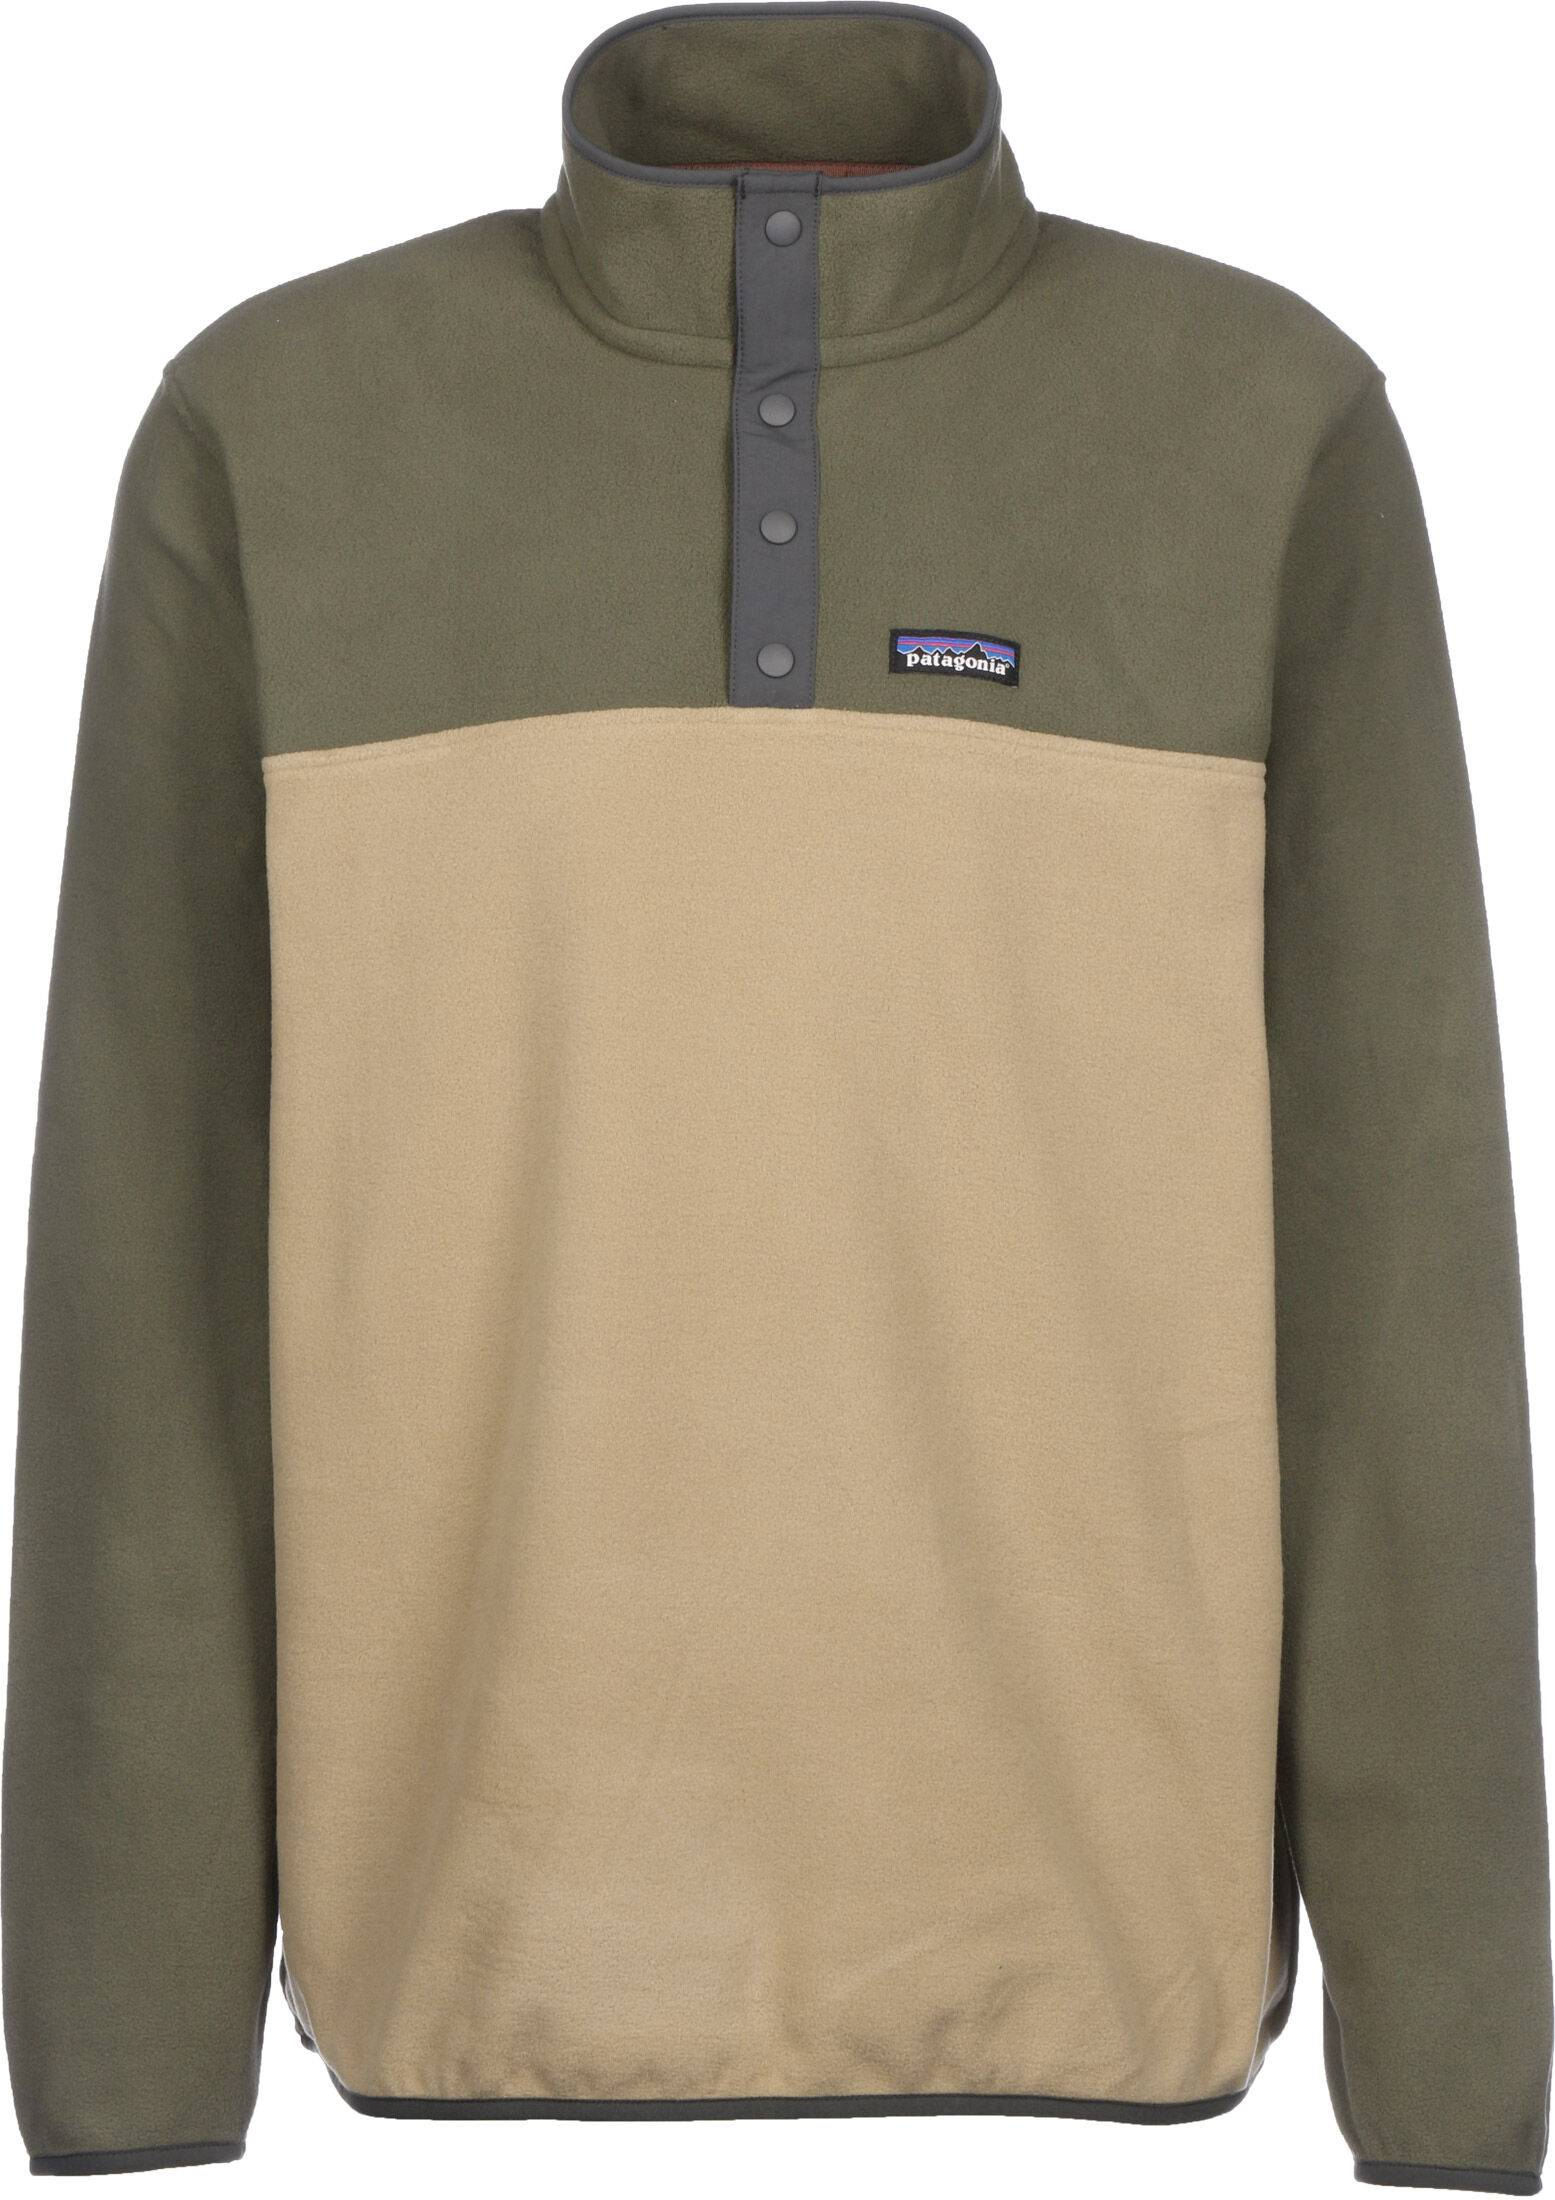 Patagonia Micro D Snap-T P/O, taille S, homme, beige olive